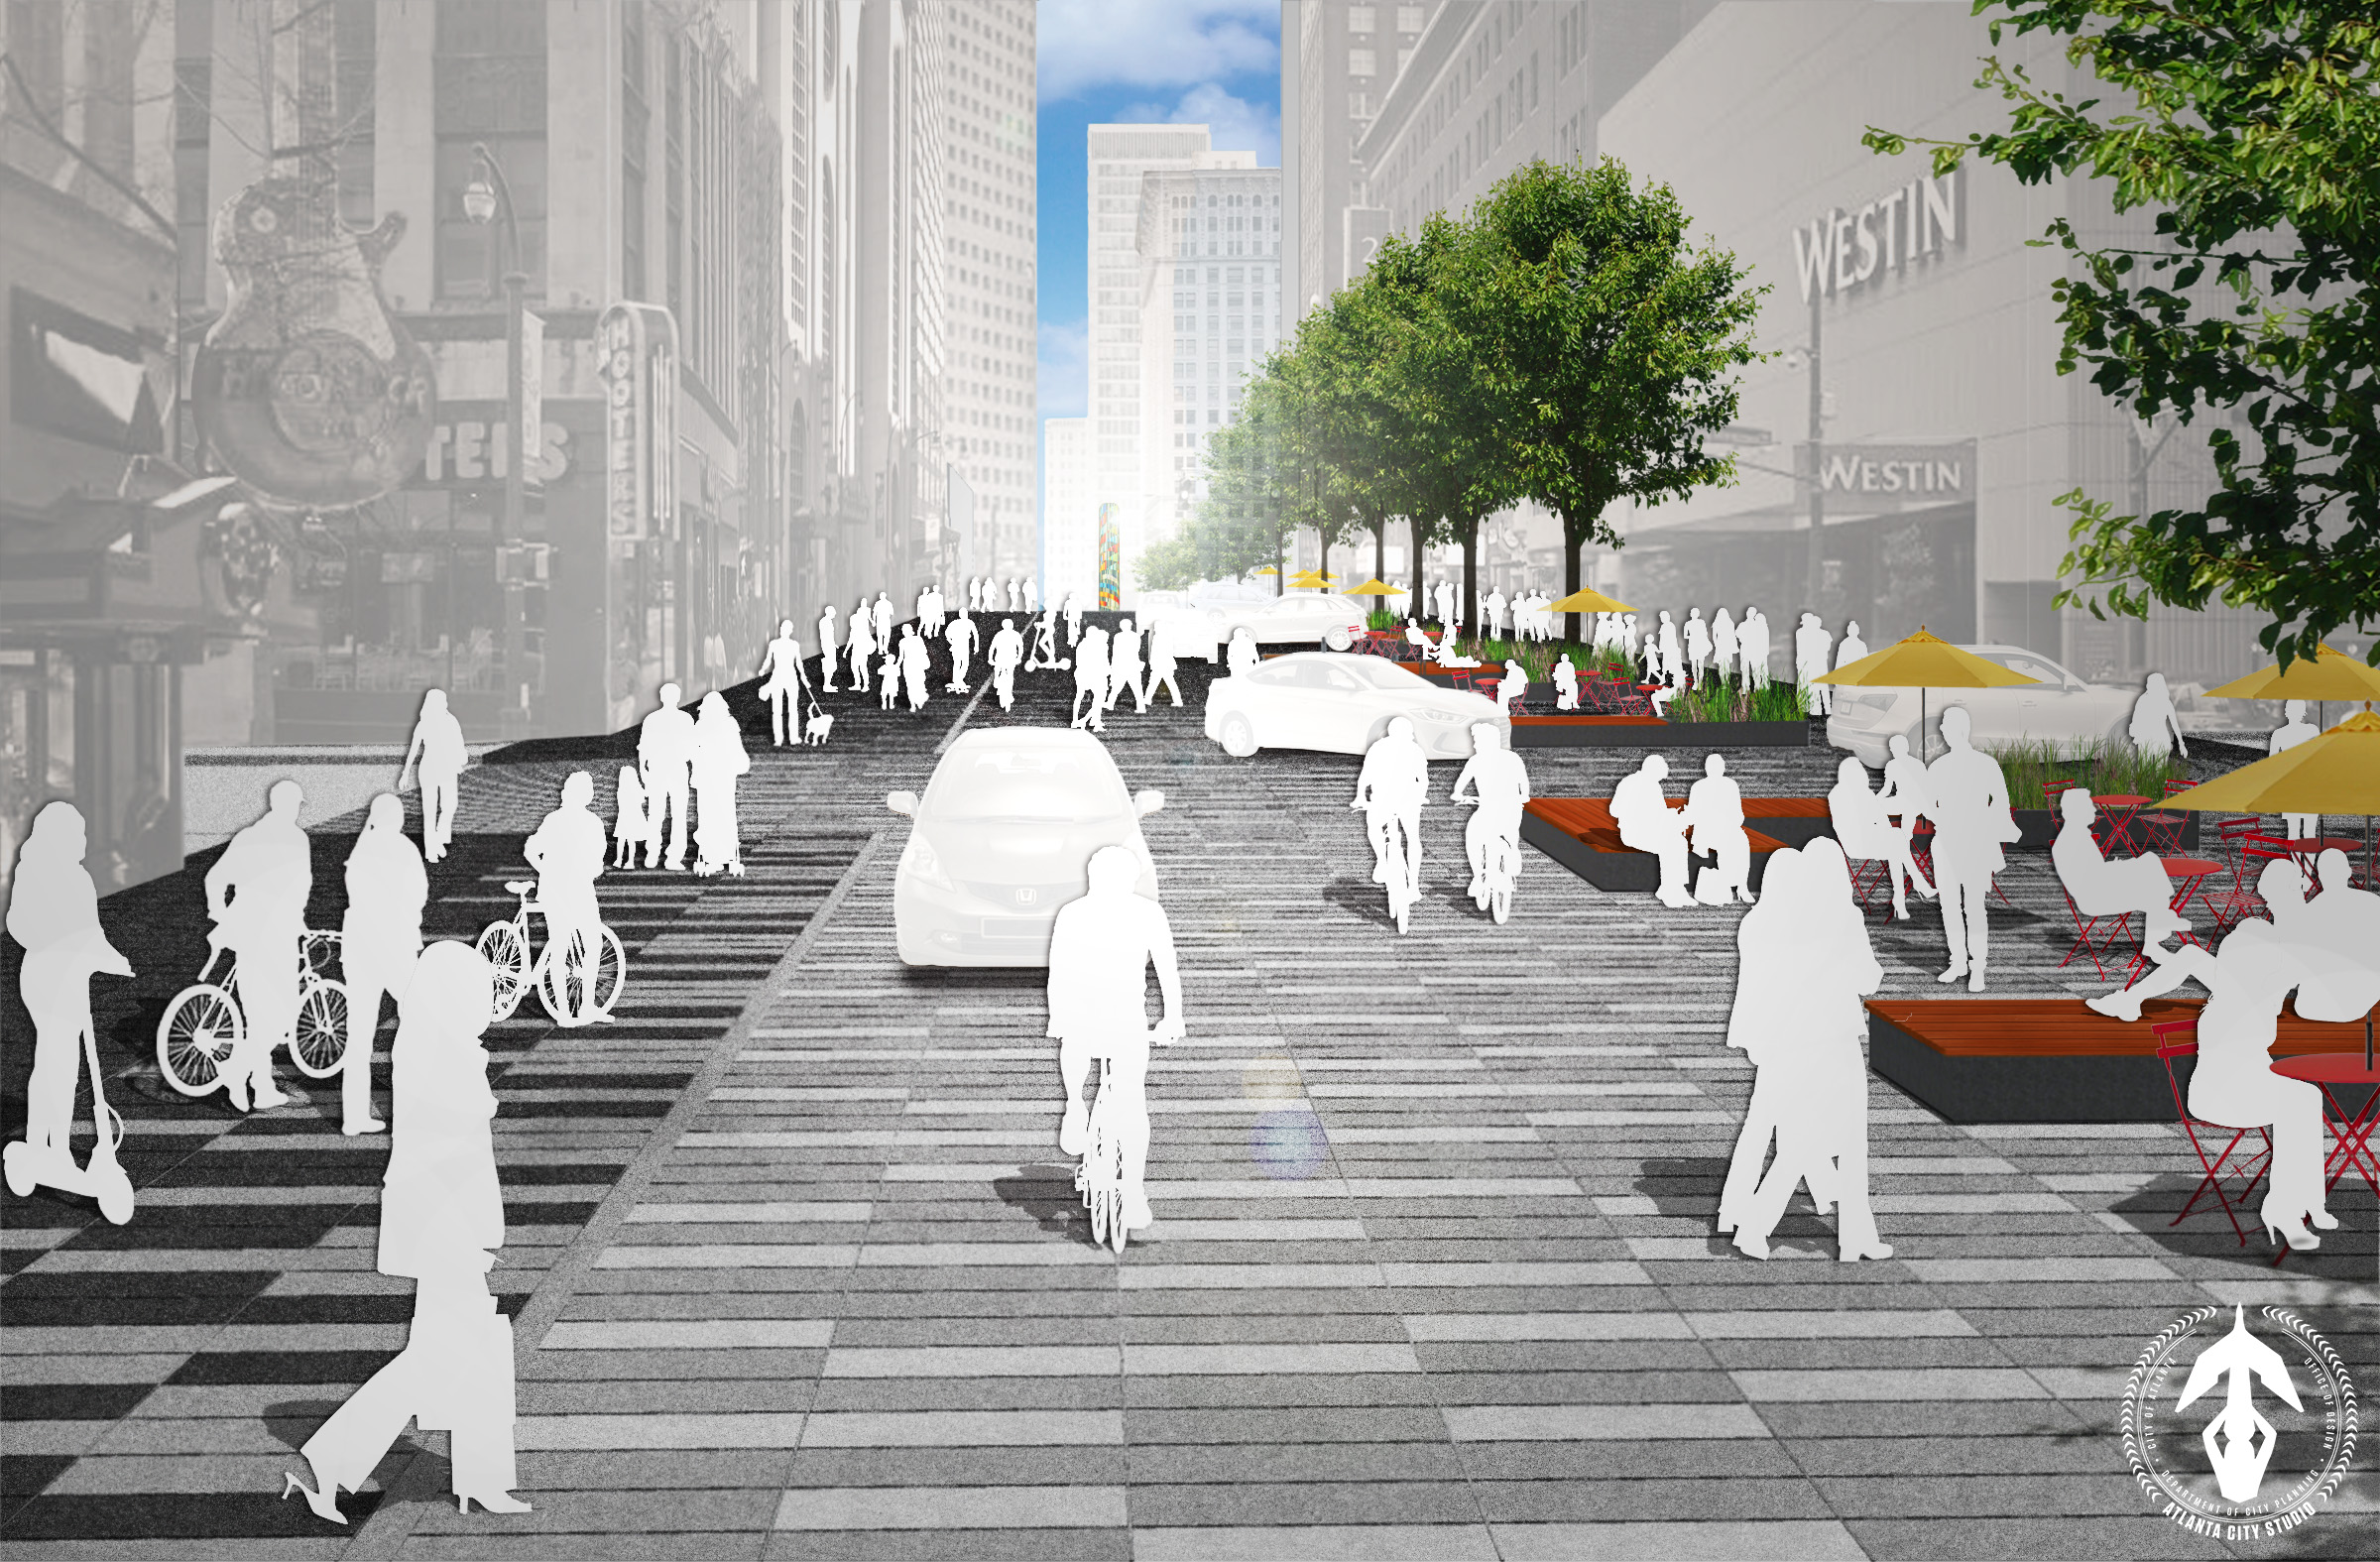 Proposed design looking towards Margaret Mitchell Square